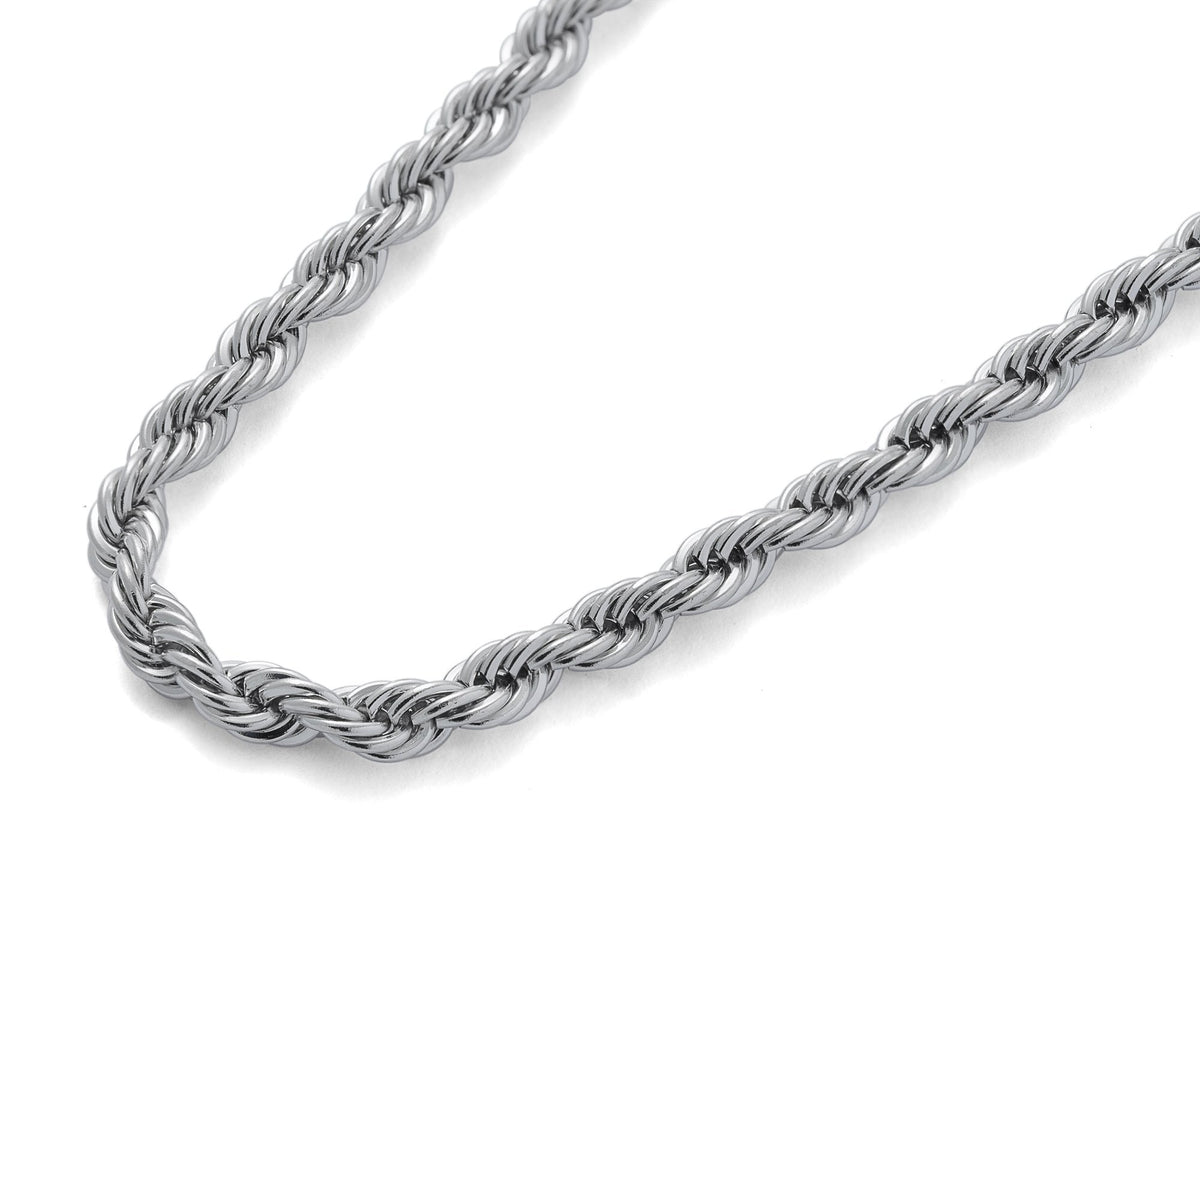 Rope Chain Necklace (4mm) - STATEMENT